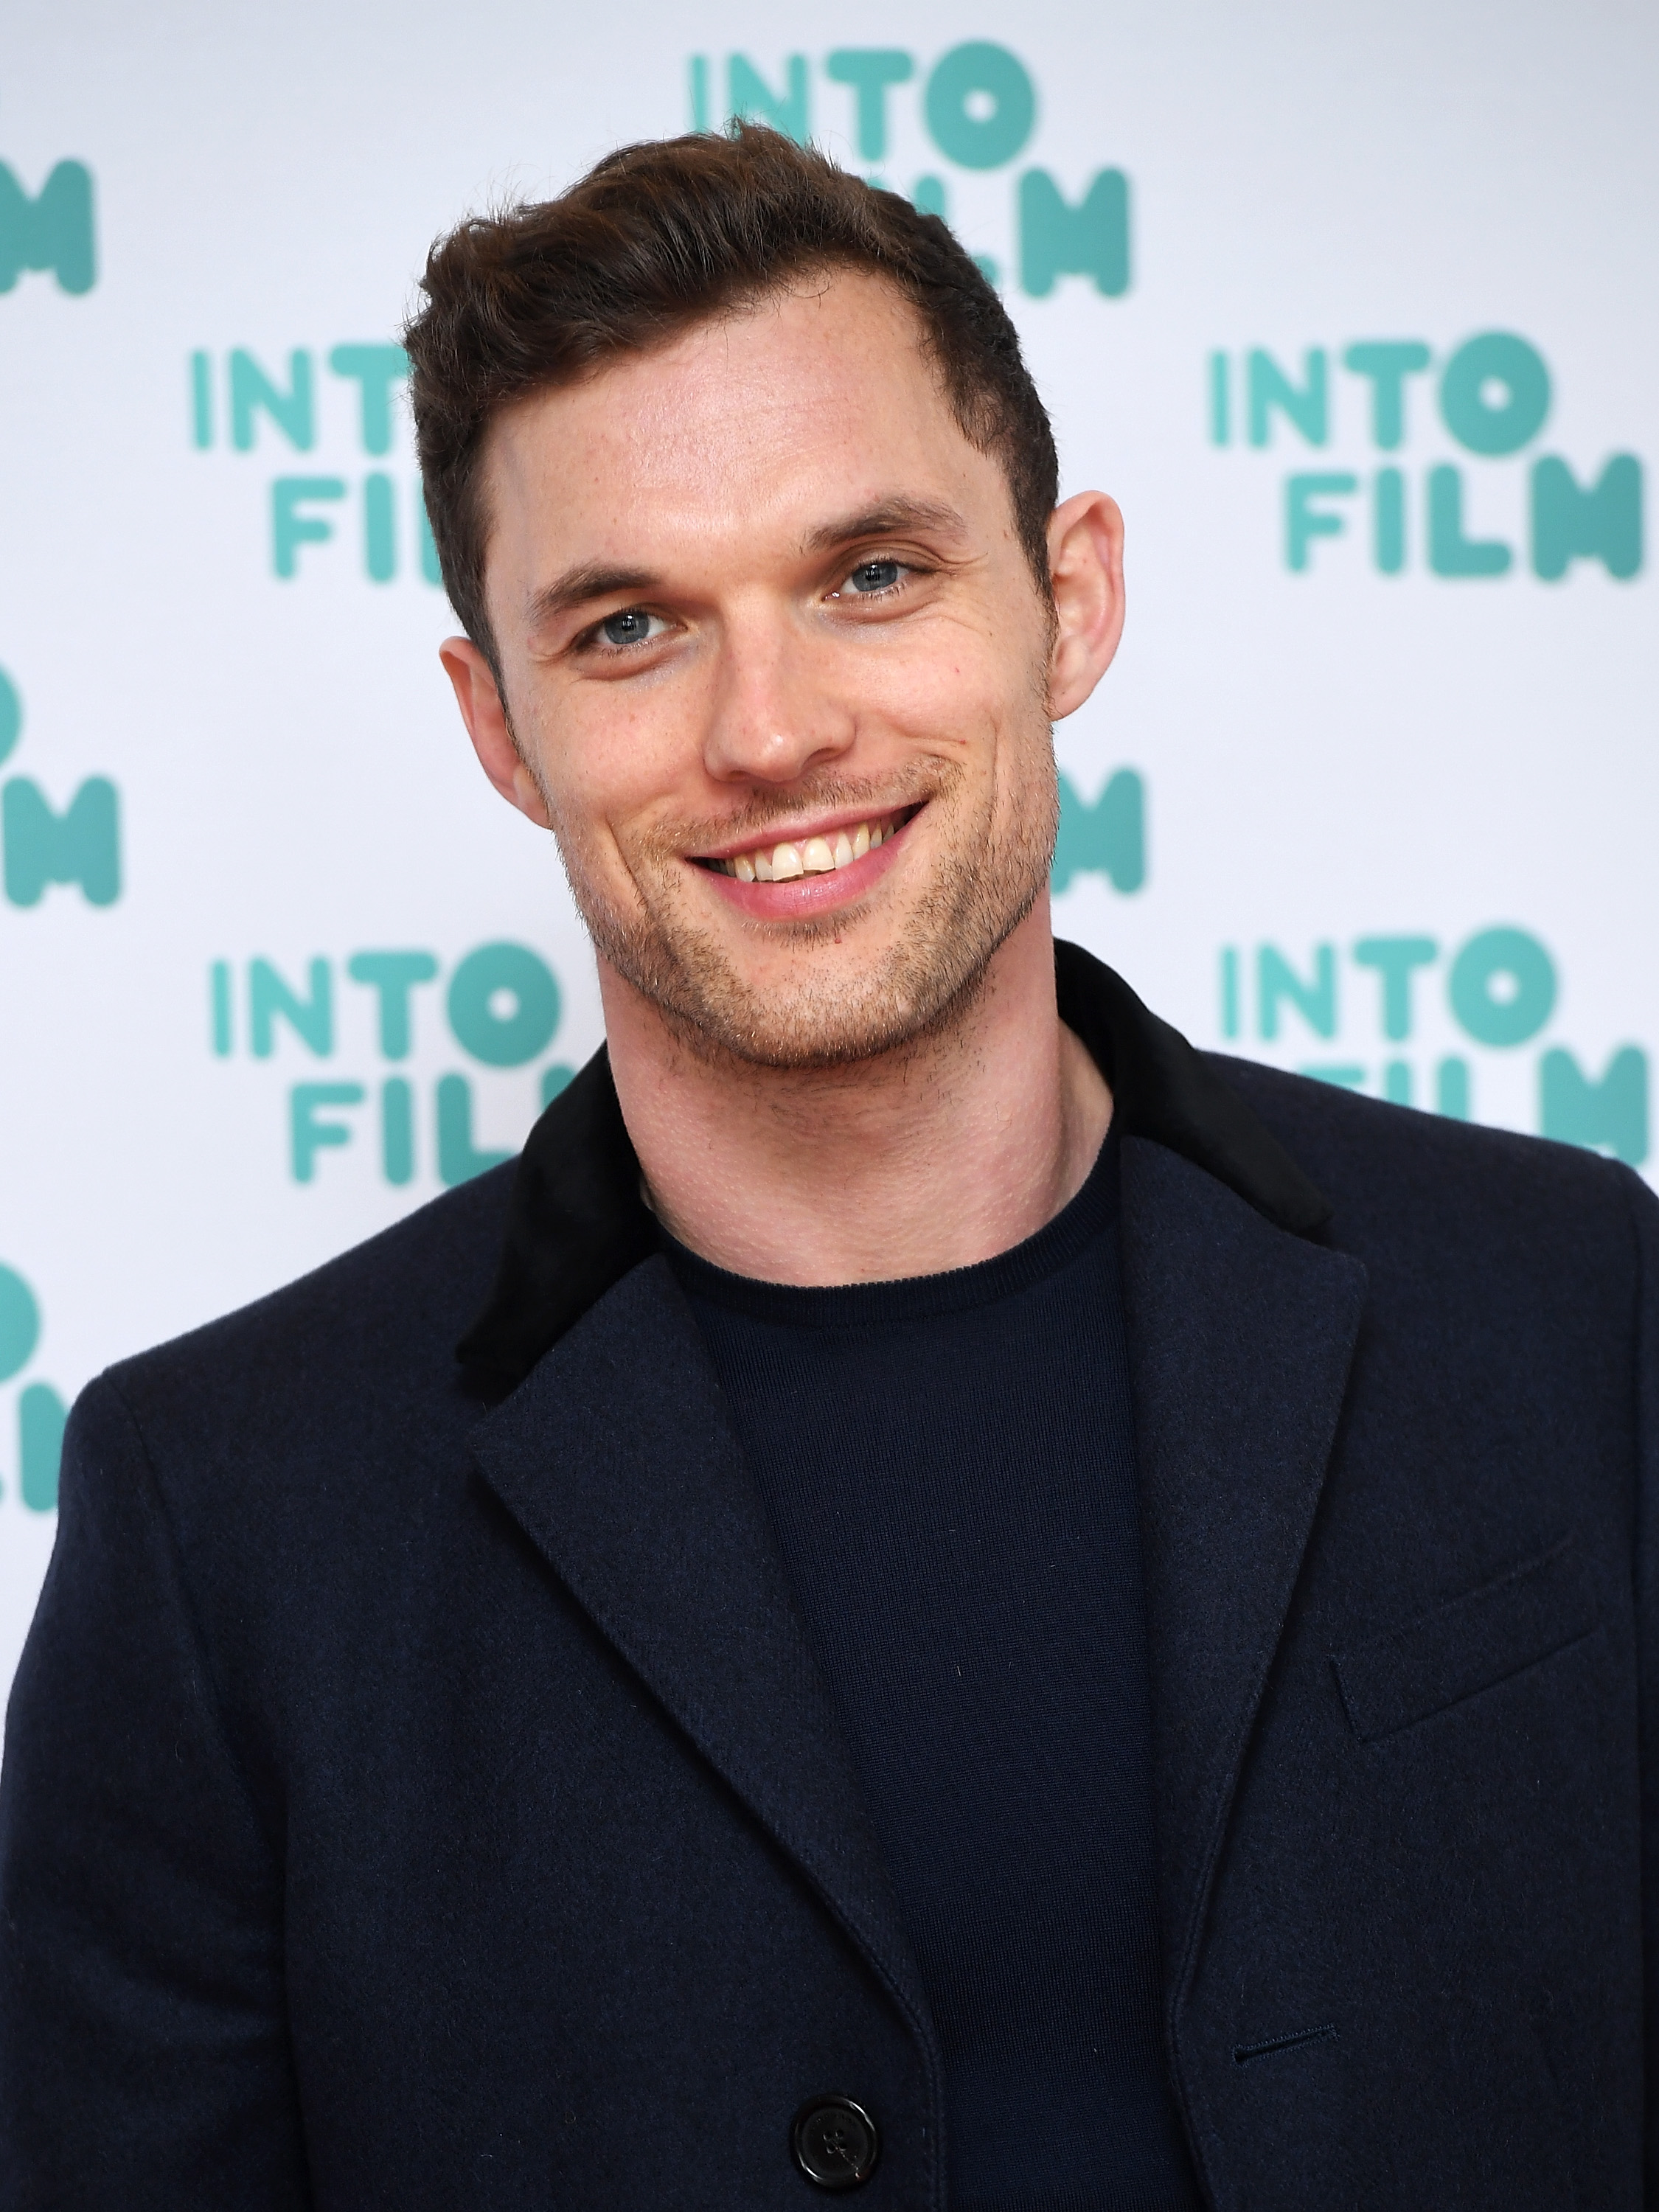 Ed Skrein attends the Into Film Awards on March 14, 2017 in London, United Kingdom.